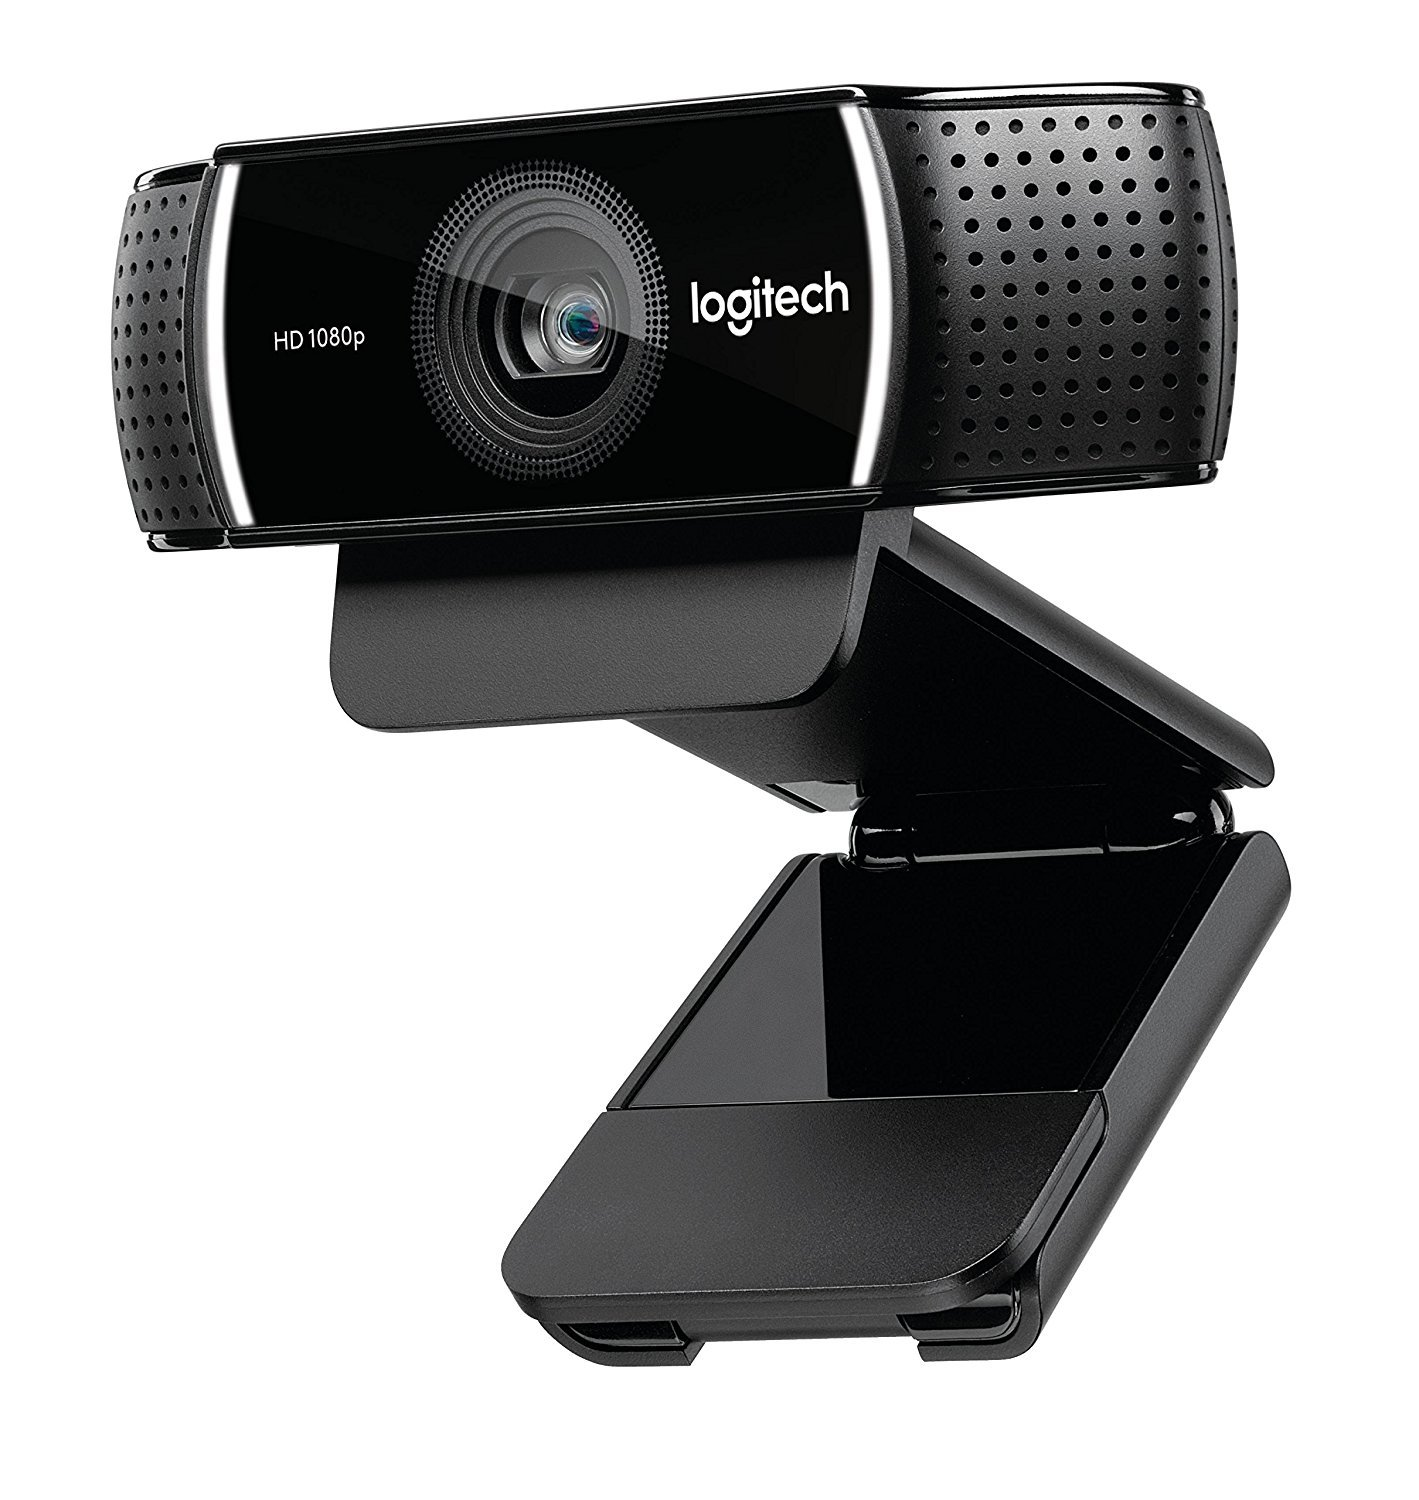 Logitech C922x Pro Stream Webcam – 1080p HD Camera for Streaming and Recording at 60 FPS – Background Replacement Technology (Certified Refurbished)